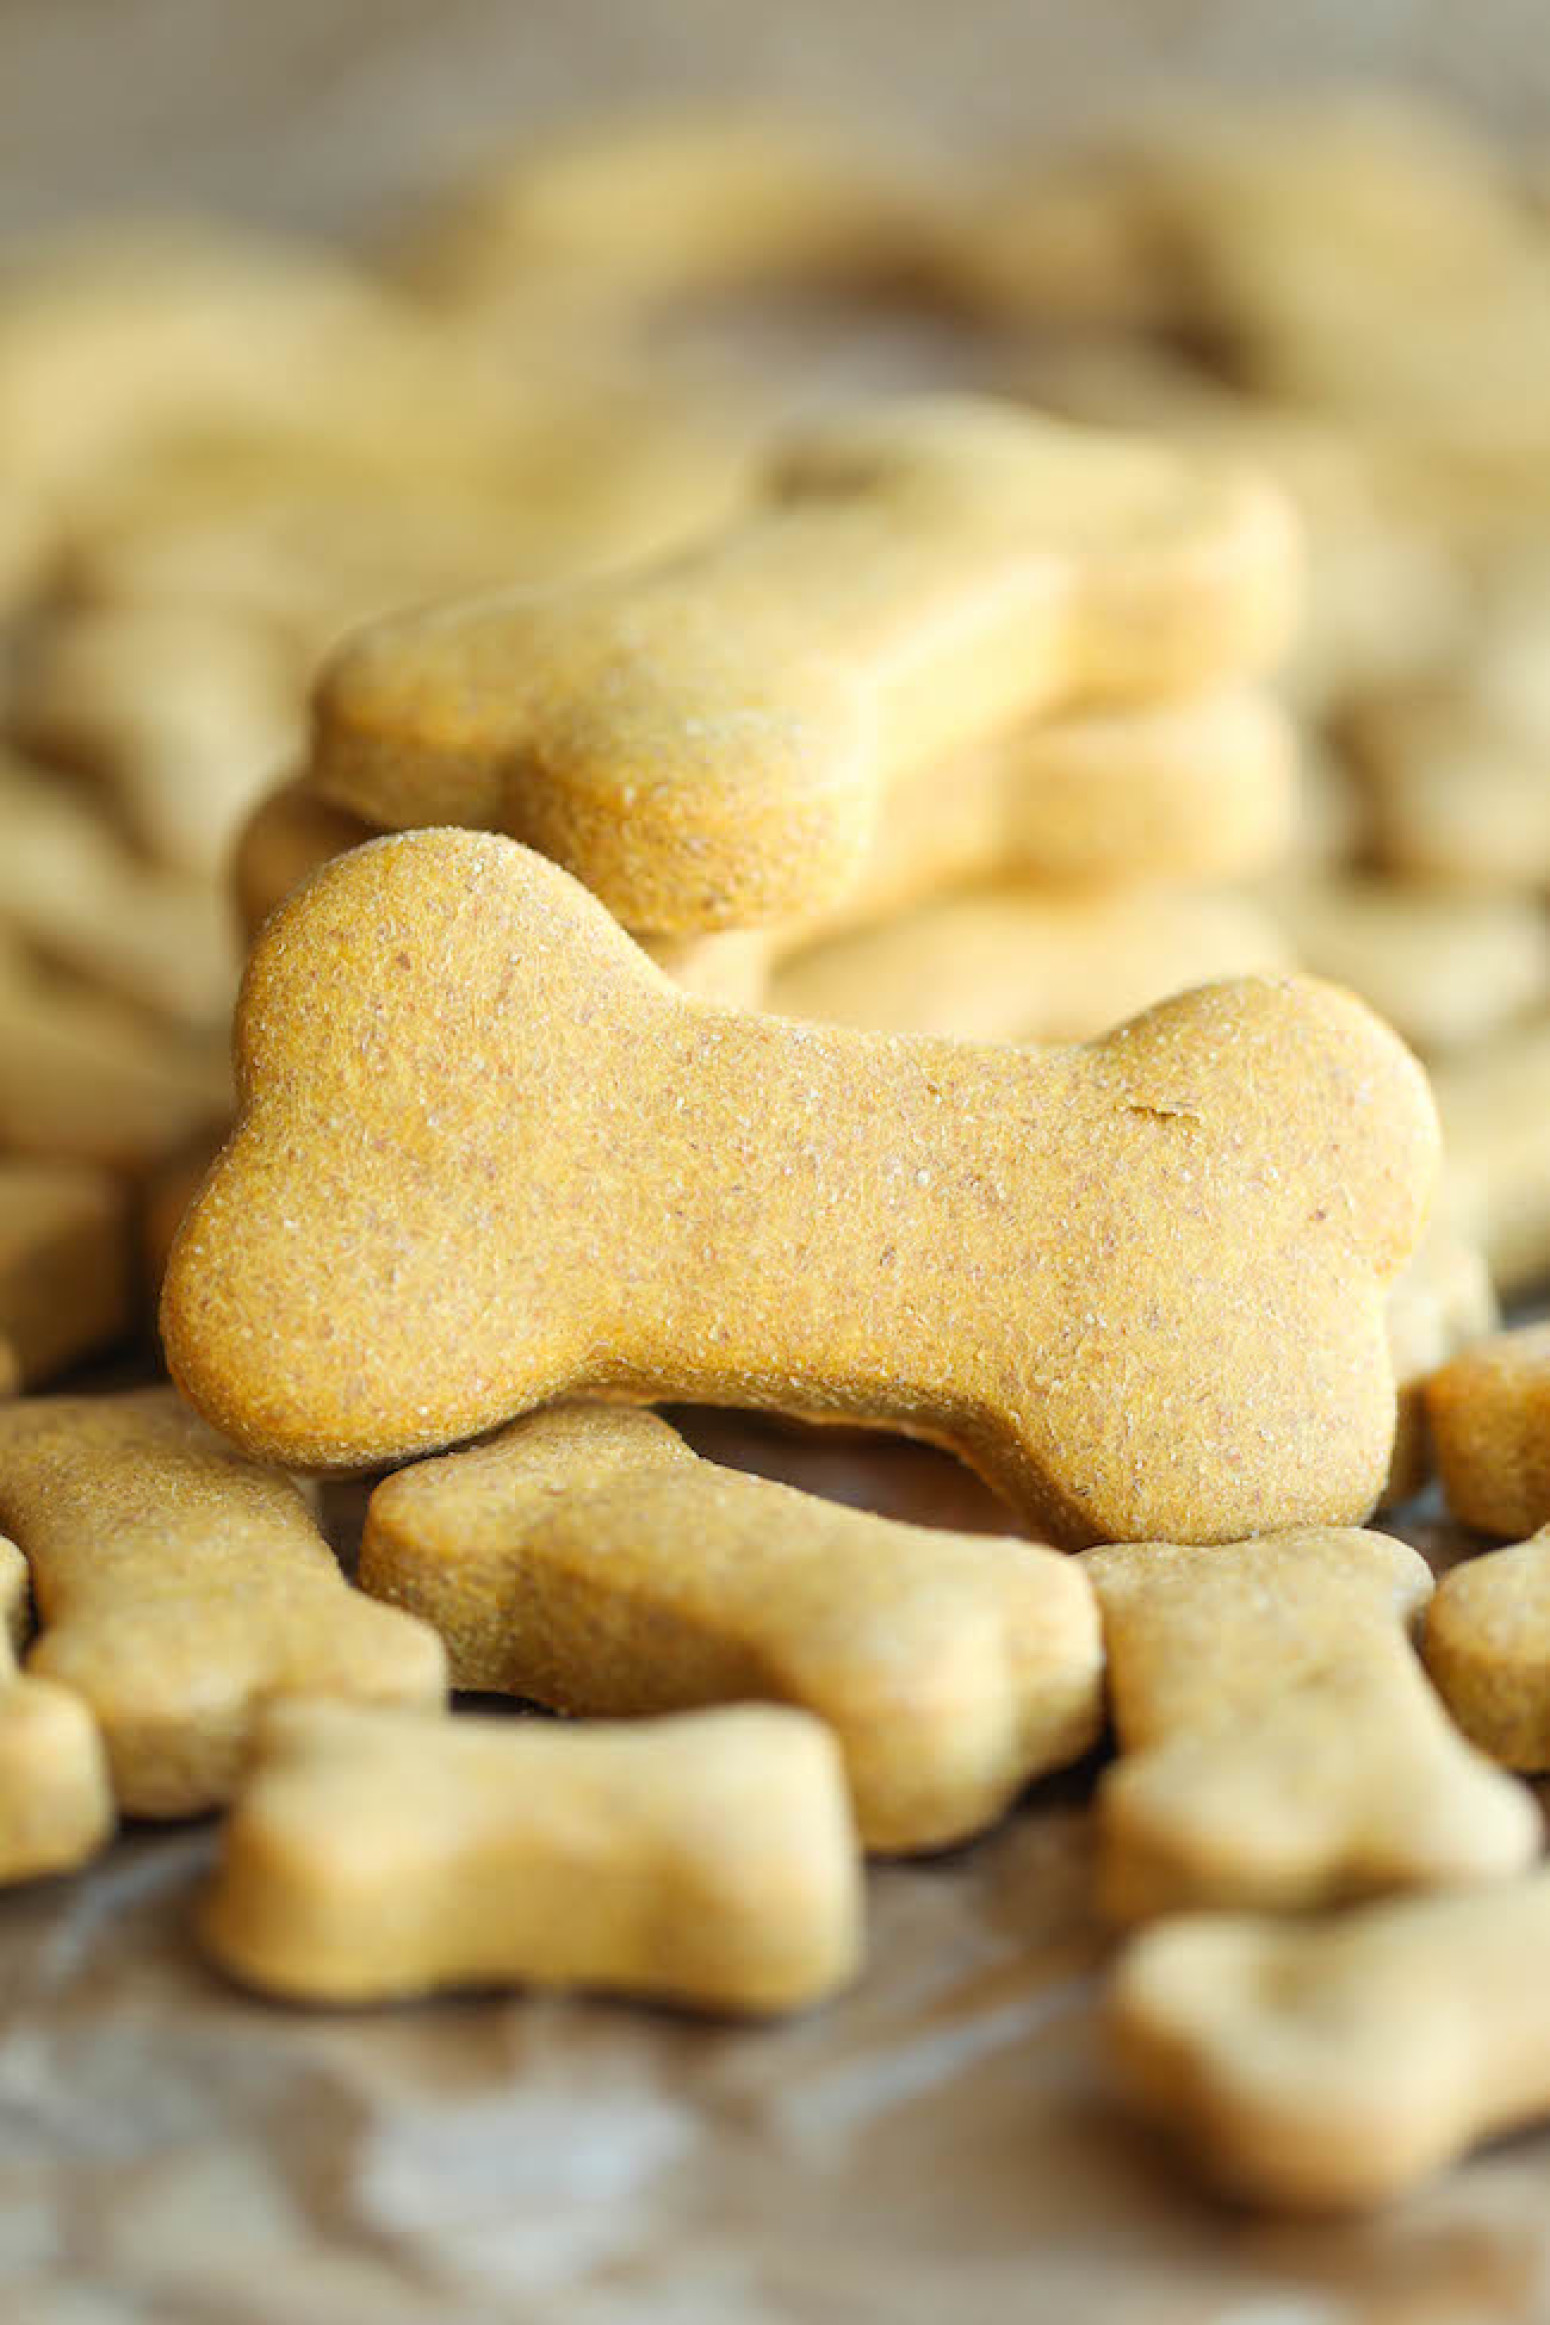 Best Recipe For Homemade Dog Treats